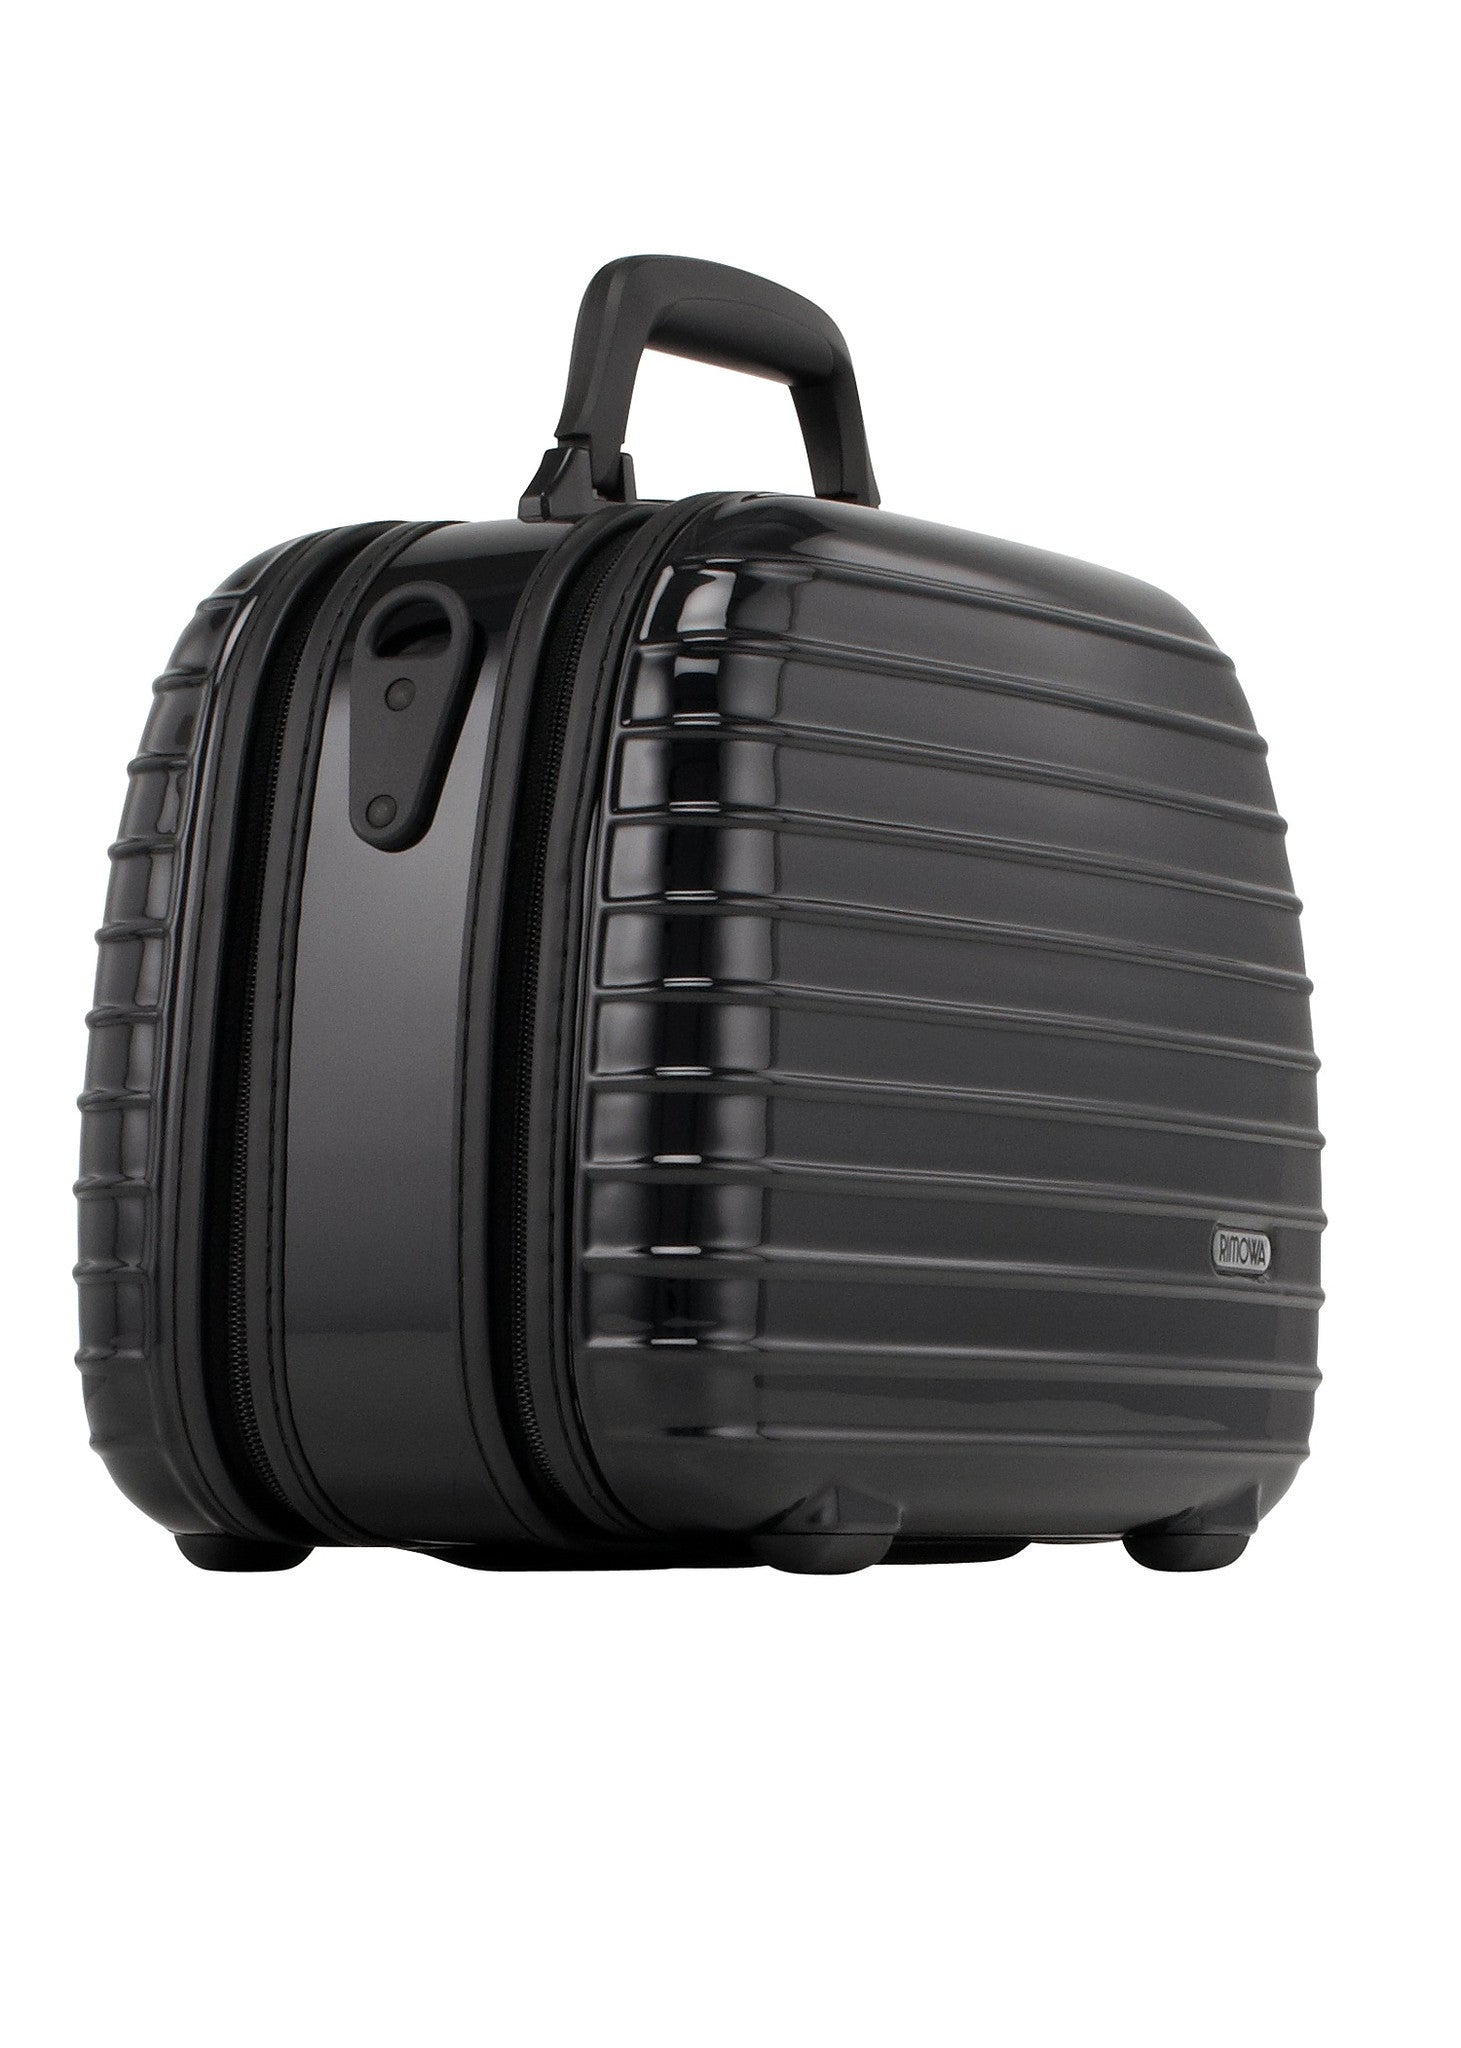 Rimowa Salsa Deluxe Beauty Case - Black | MEGO